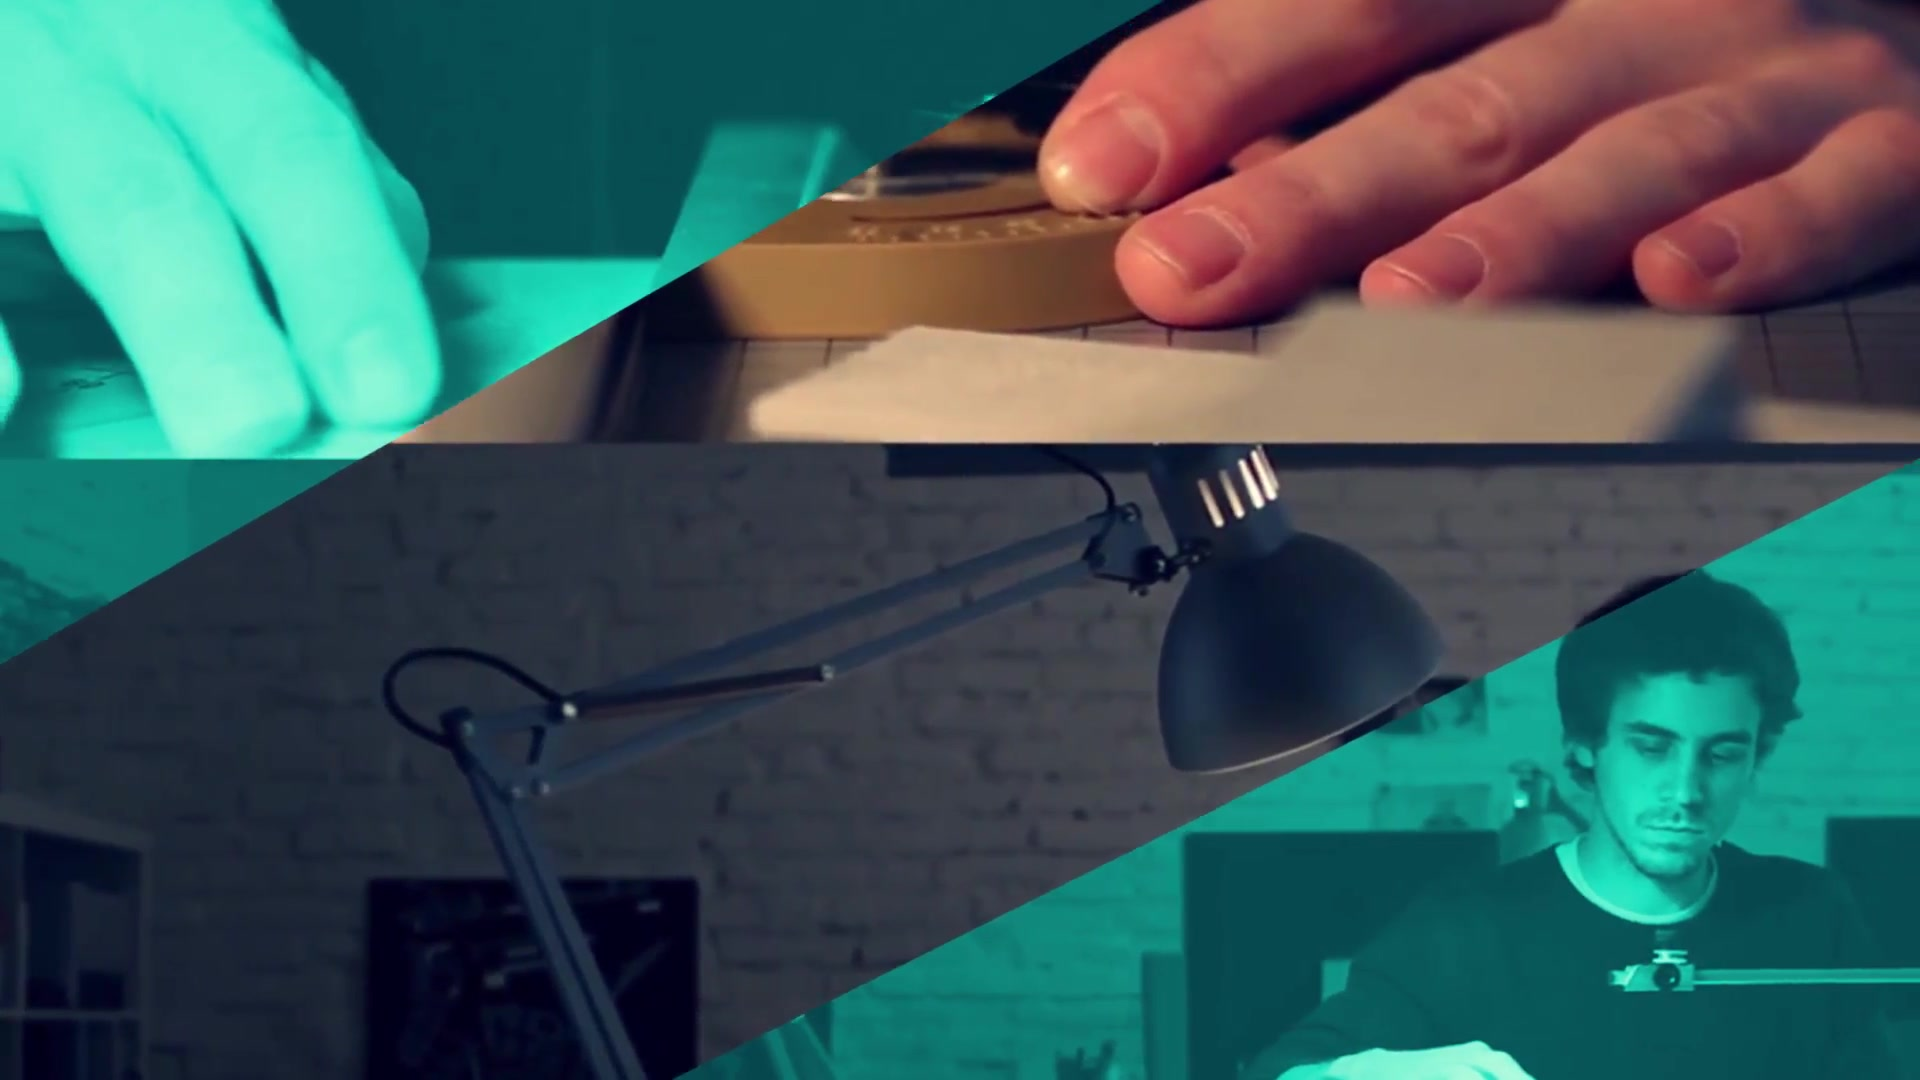 Modern Opener - Download Videohive 15110760